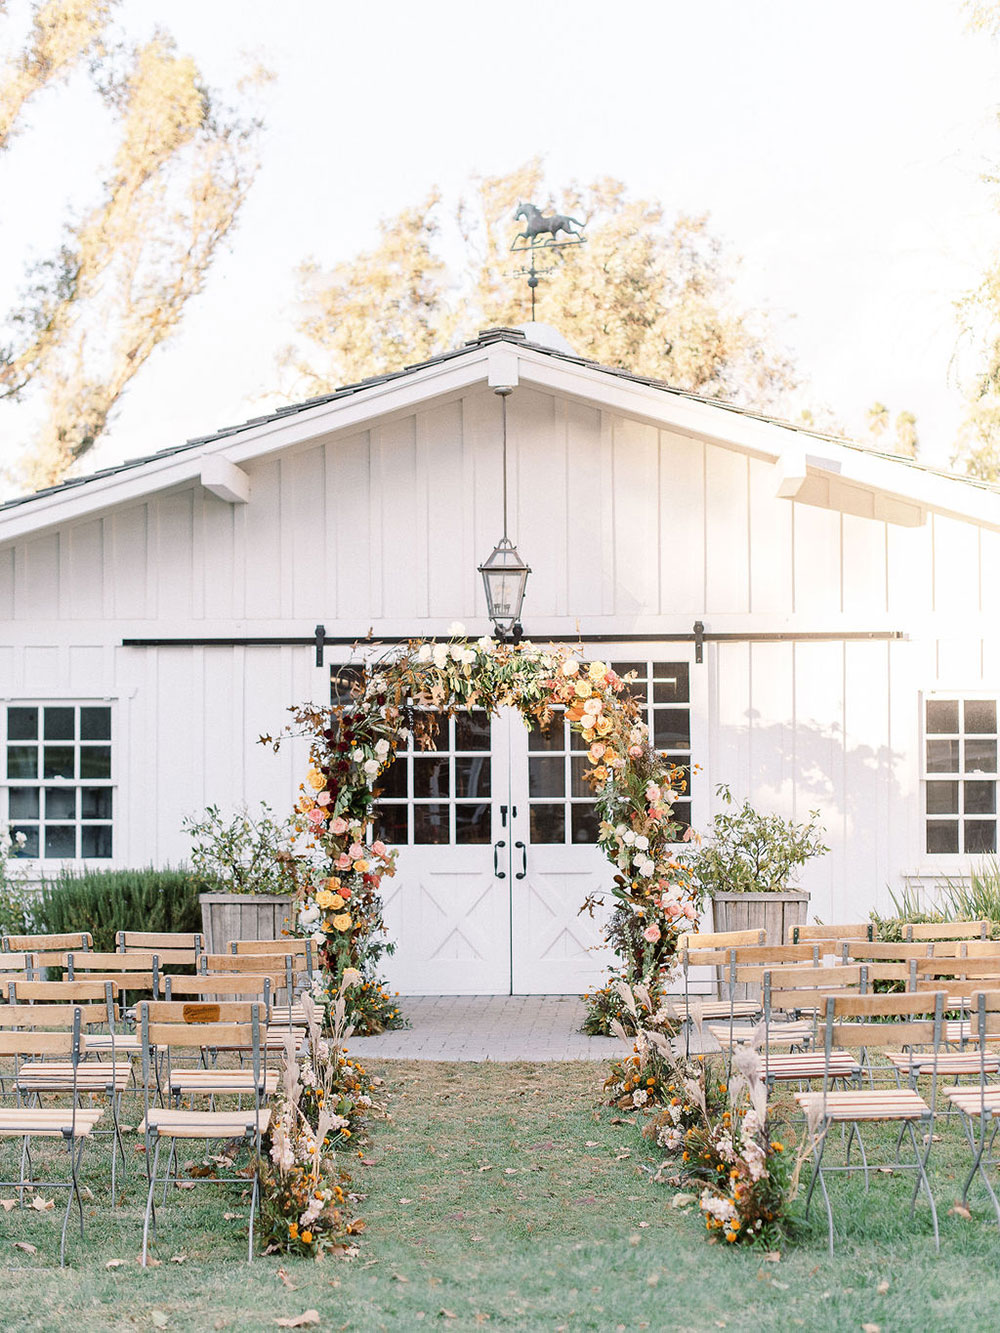 Modern, ethereal ranch wedding inspiration